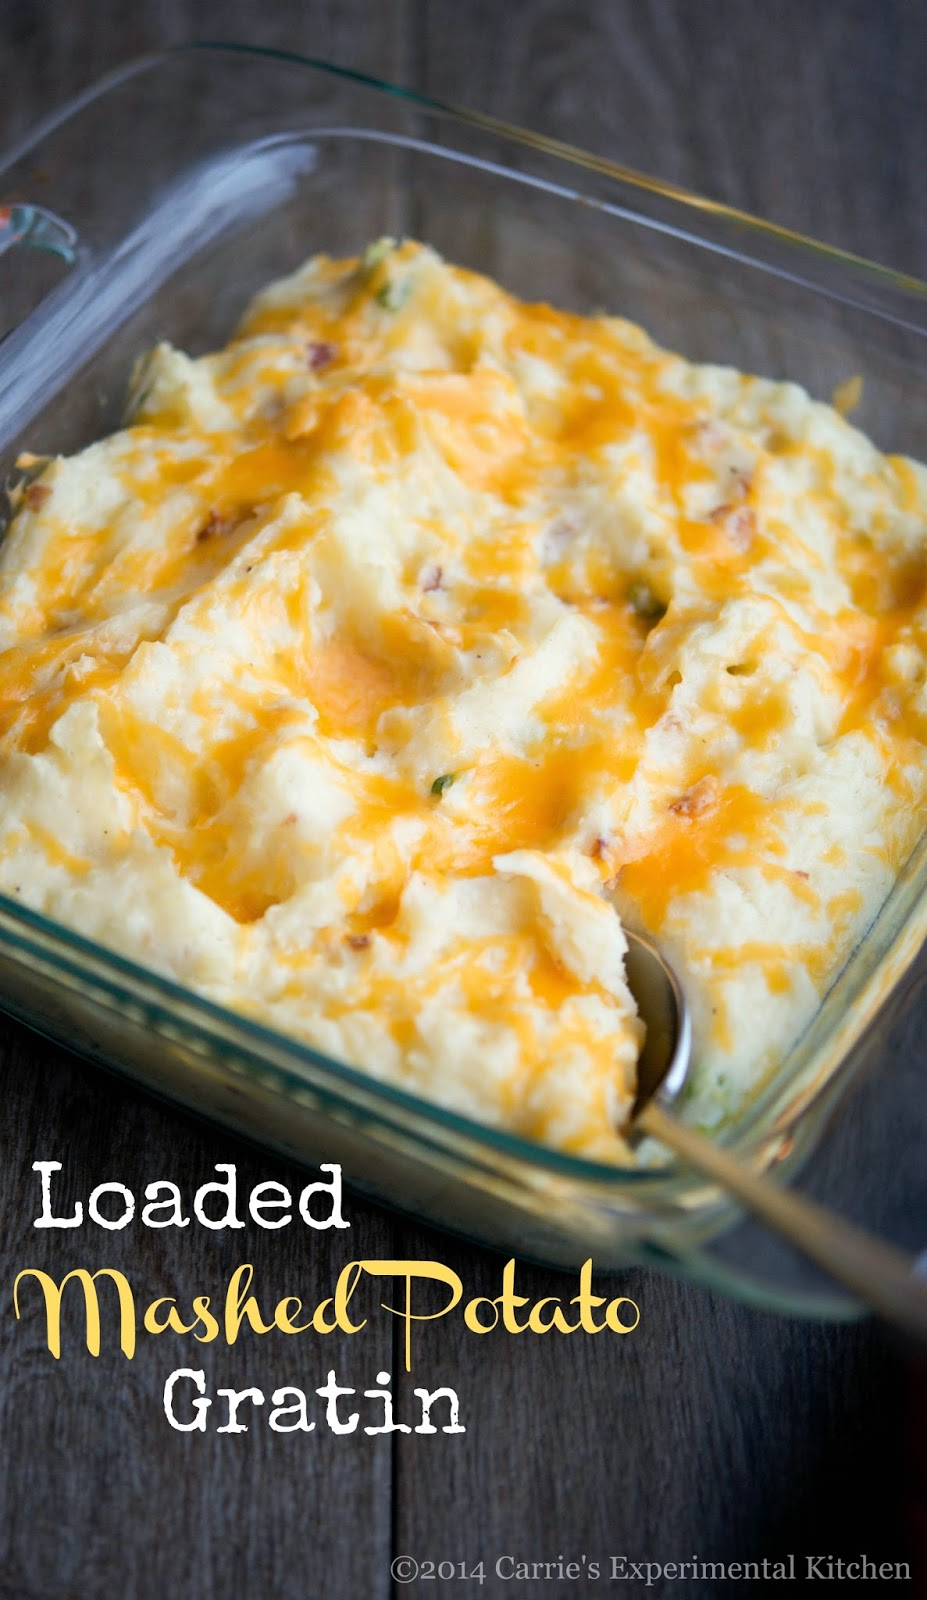 Carrie's Experimental Kitchen: Loaded Mashed Potato Gratin